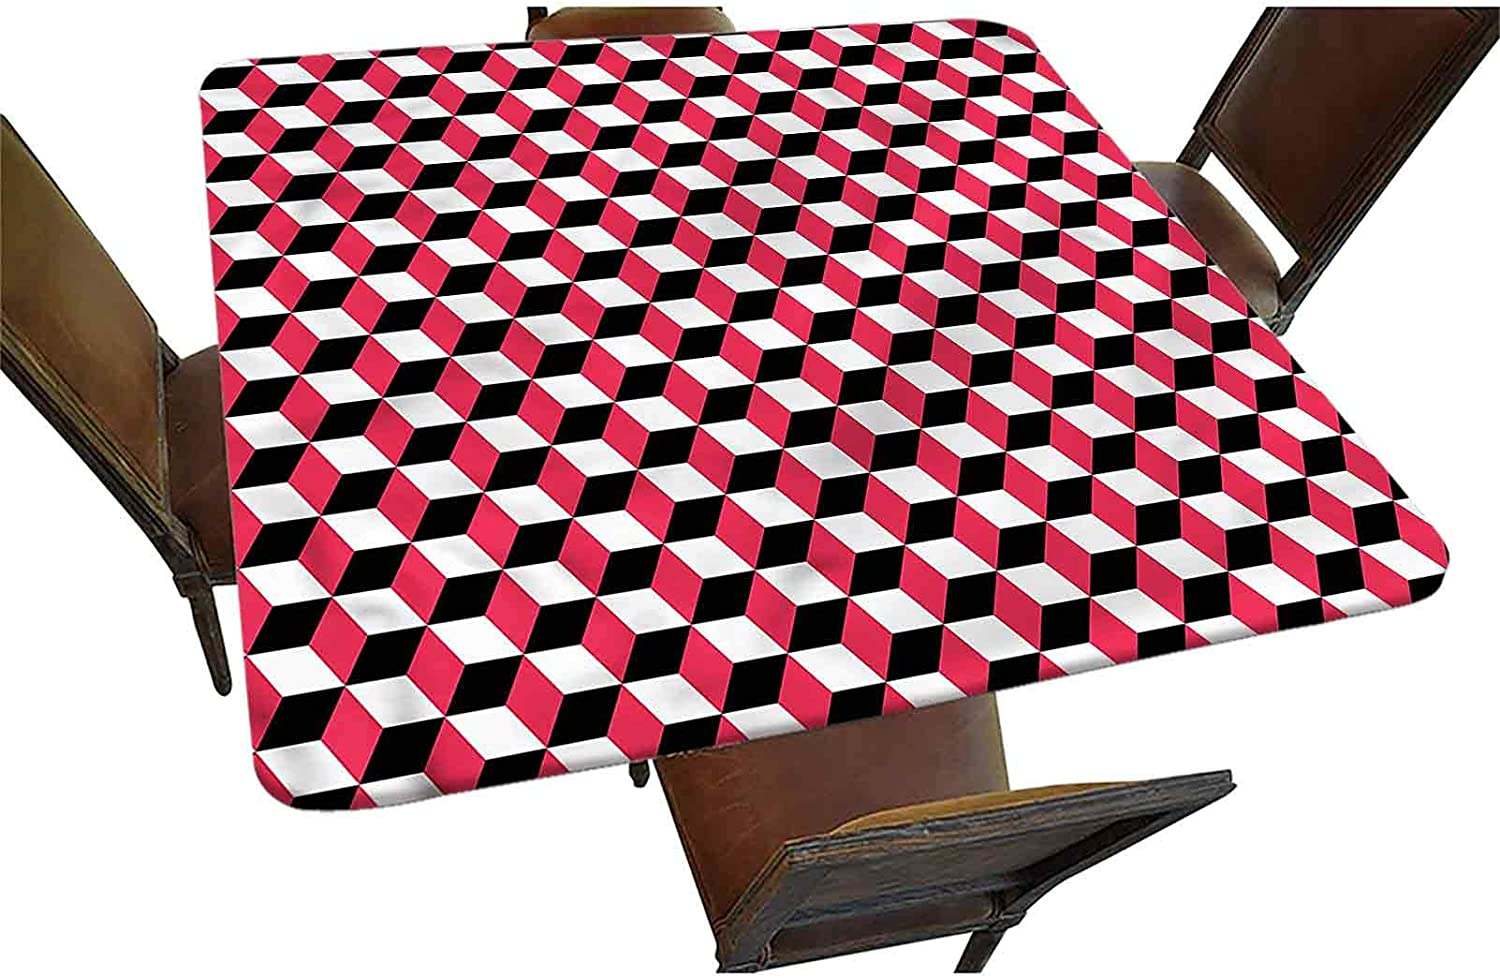 Decorative Max 43% OFF Elastic Edged Factory outlet Square Cube Geometric Fitted Tablecloth